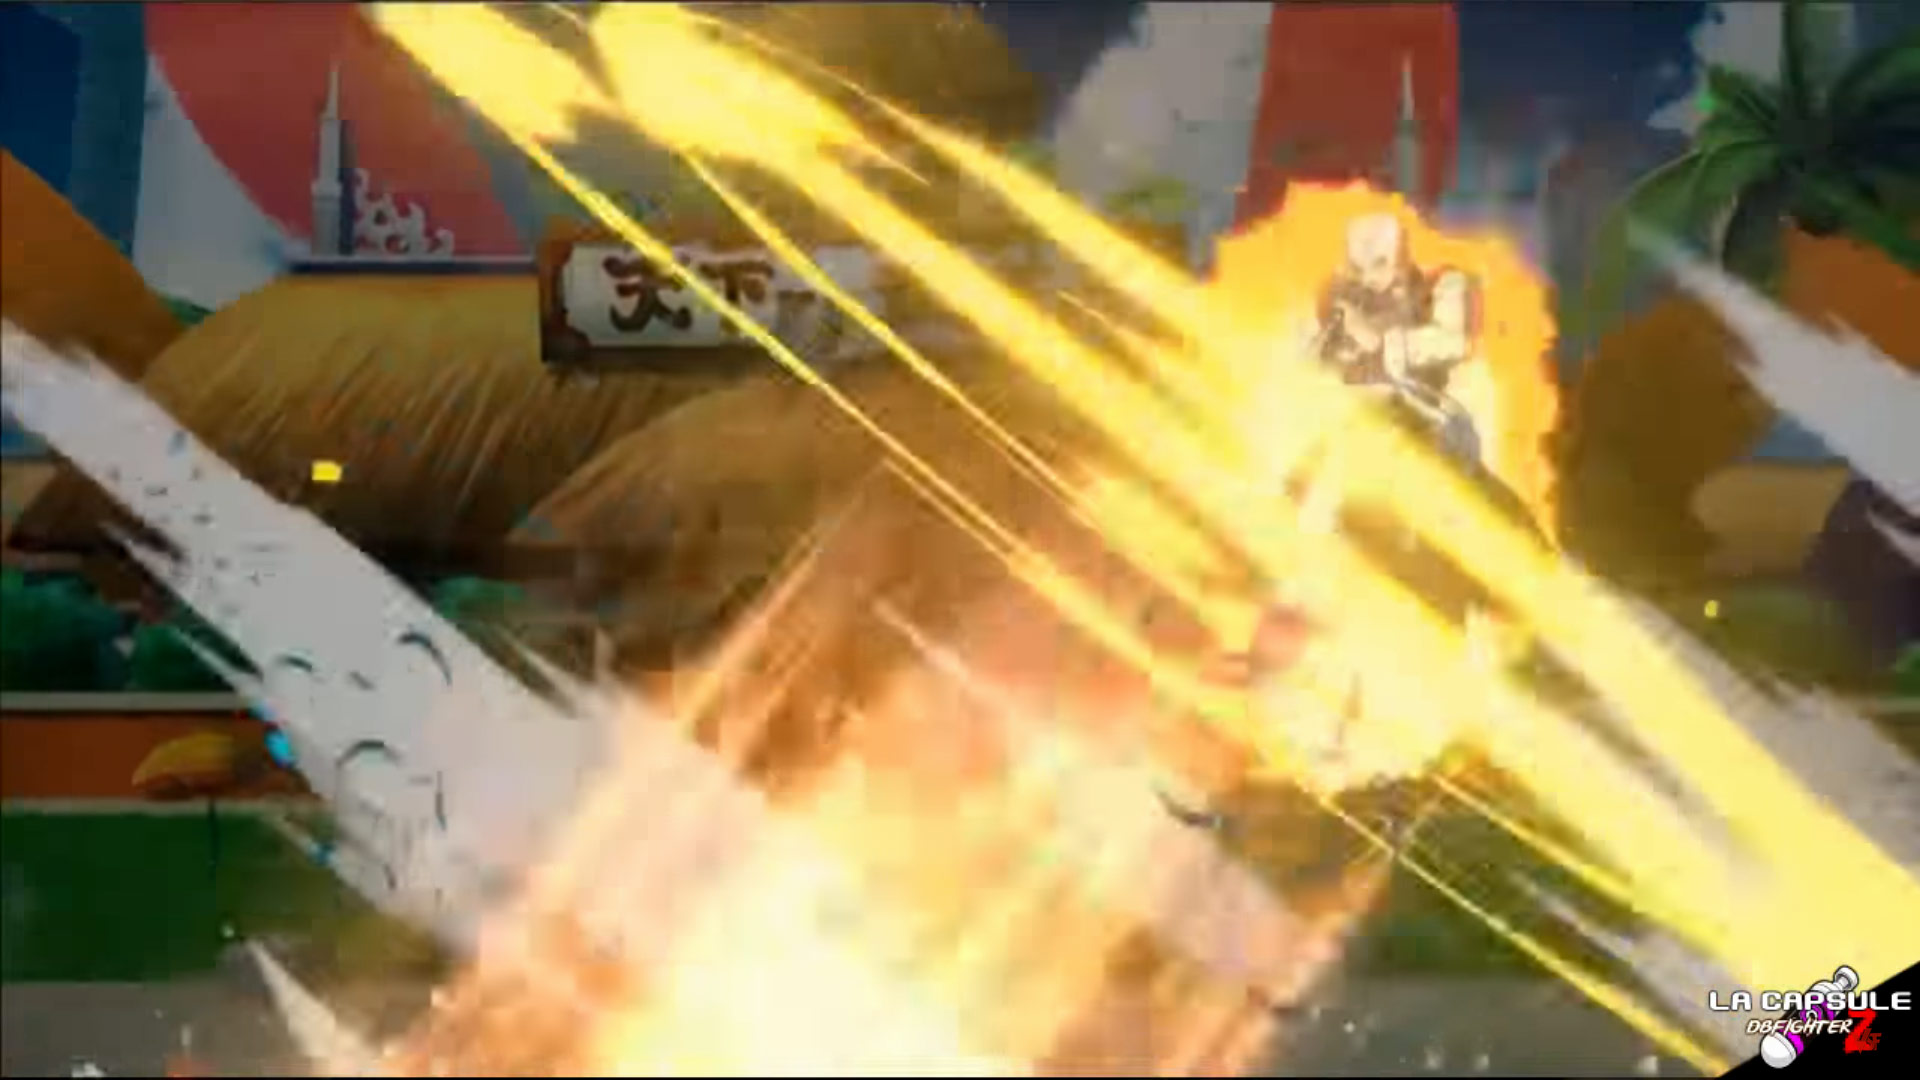 Yamcha and Tenshinhan Gameplay Trailer Gallery 6 out of 6 image gallery